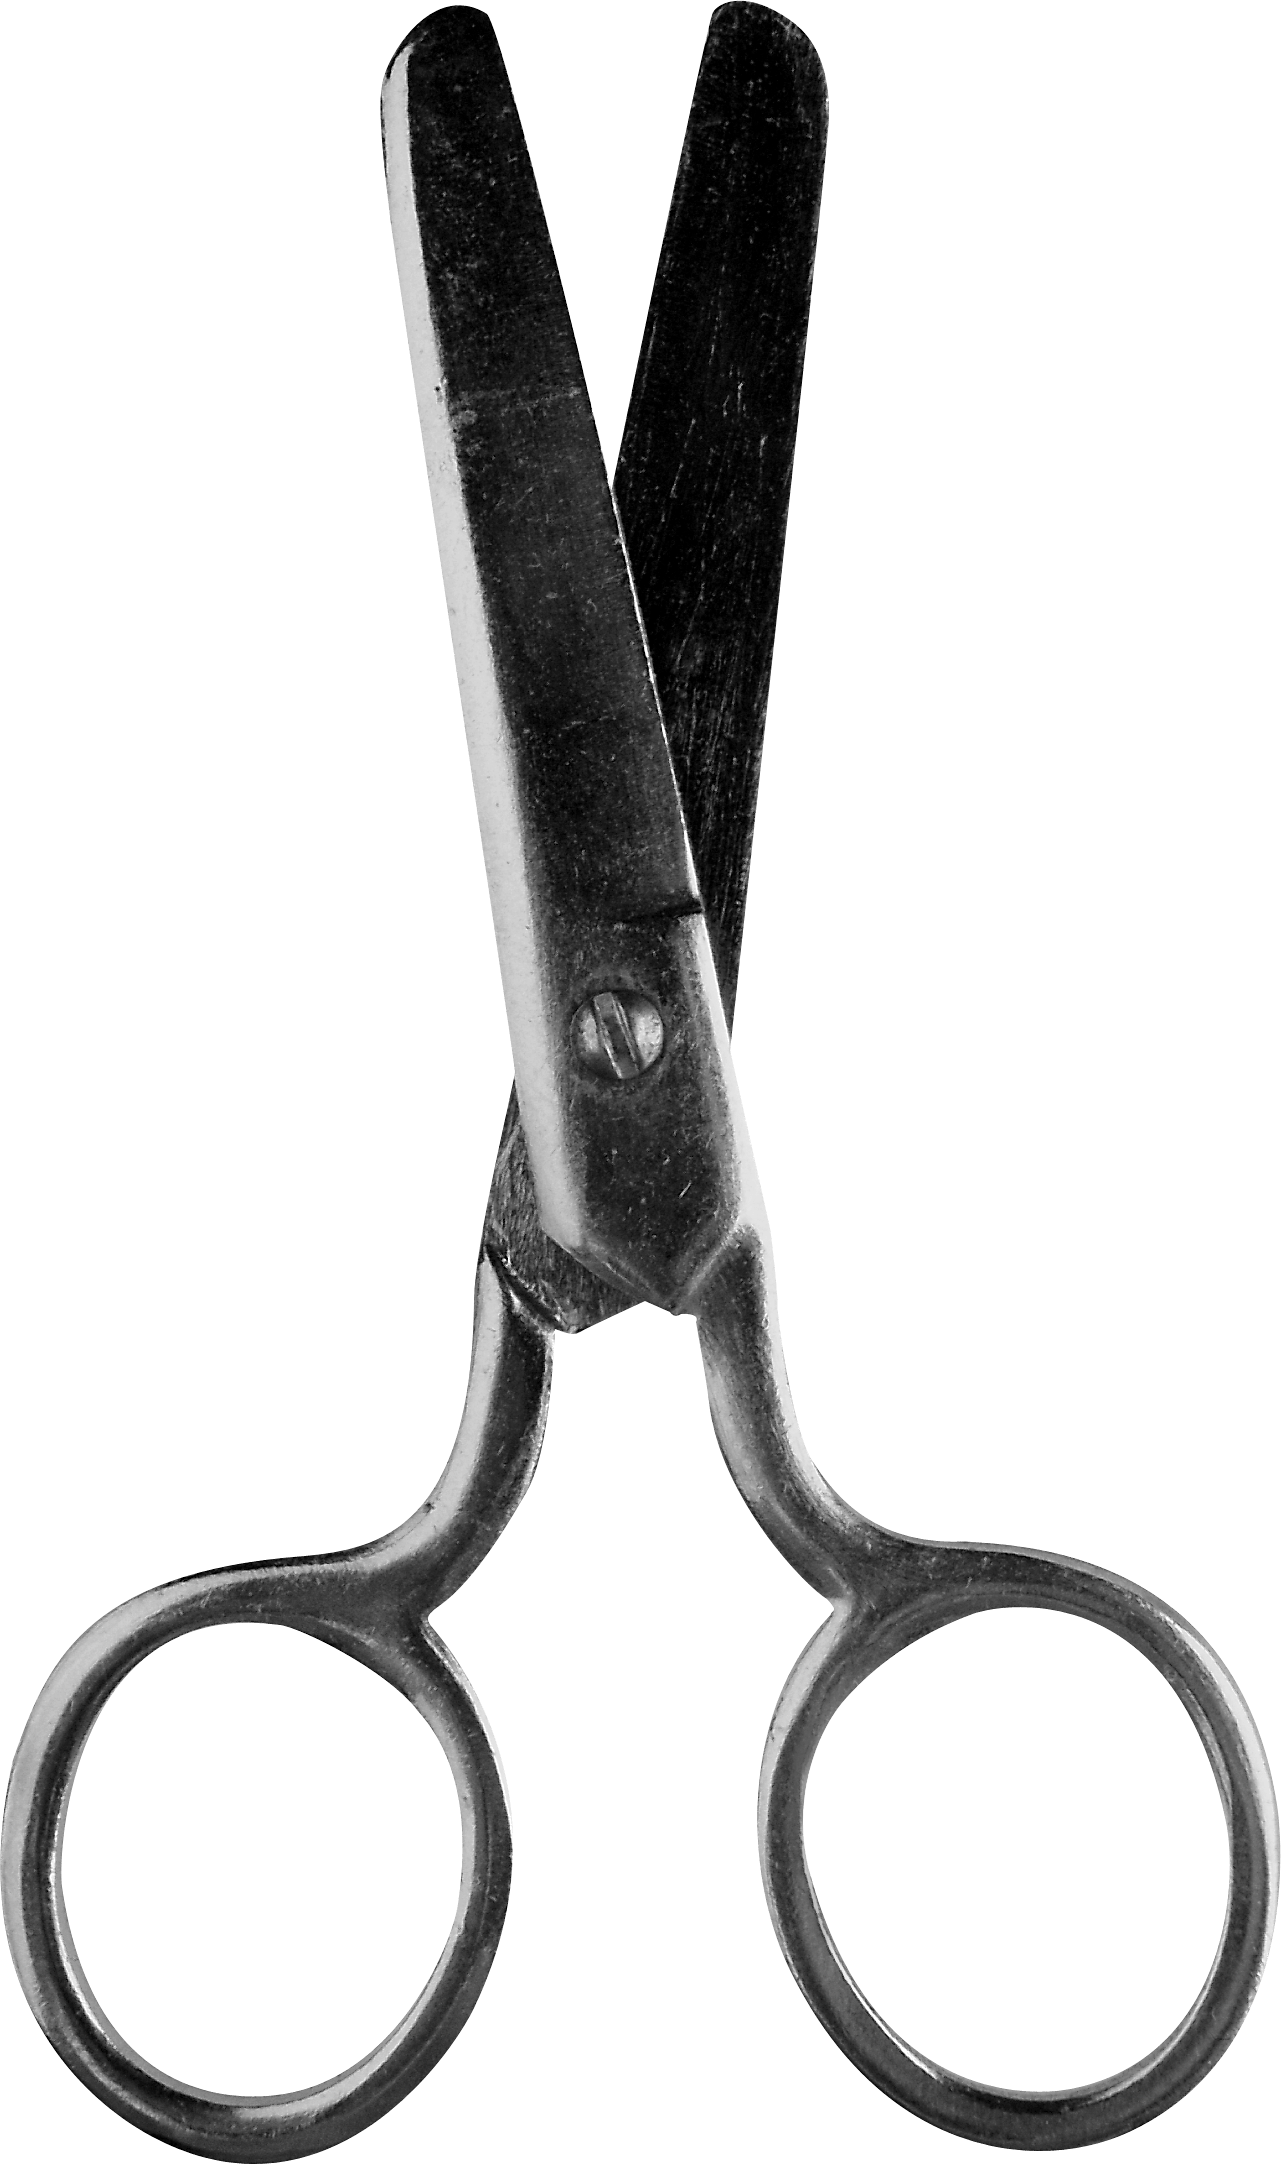 Scissors Png Image PNG Image